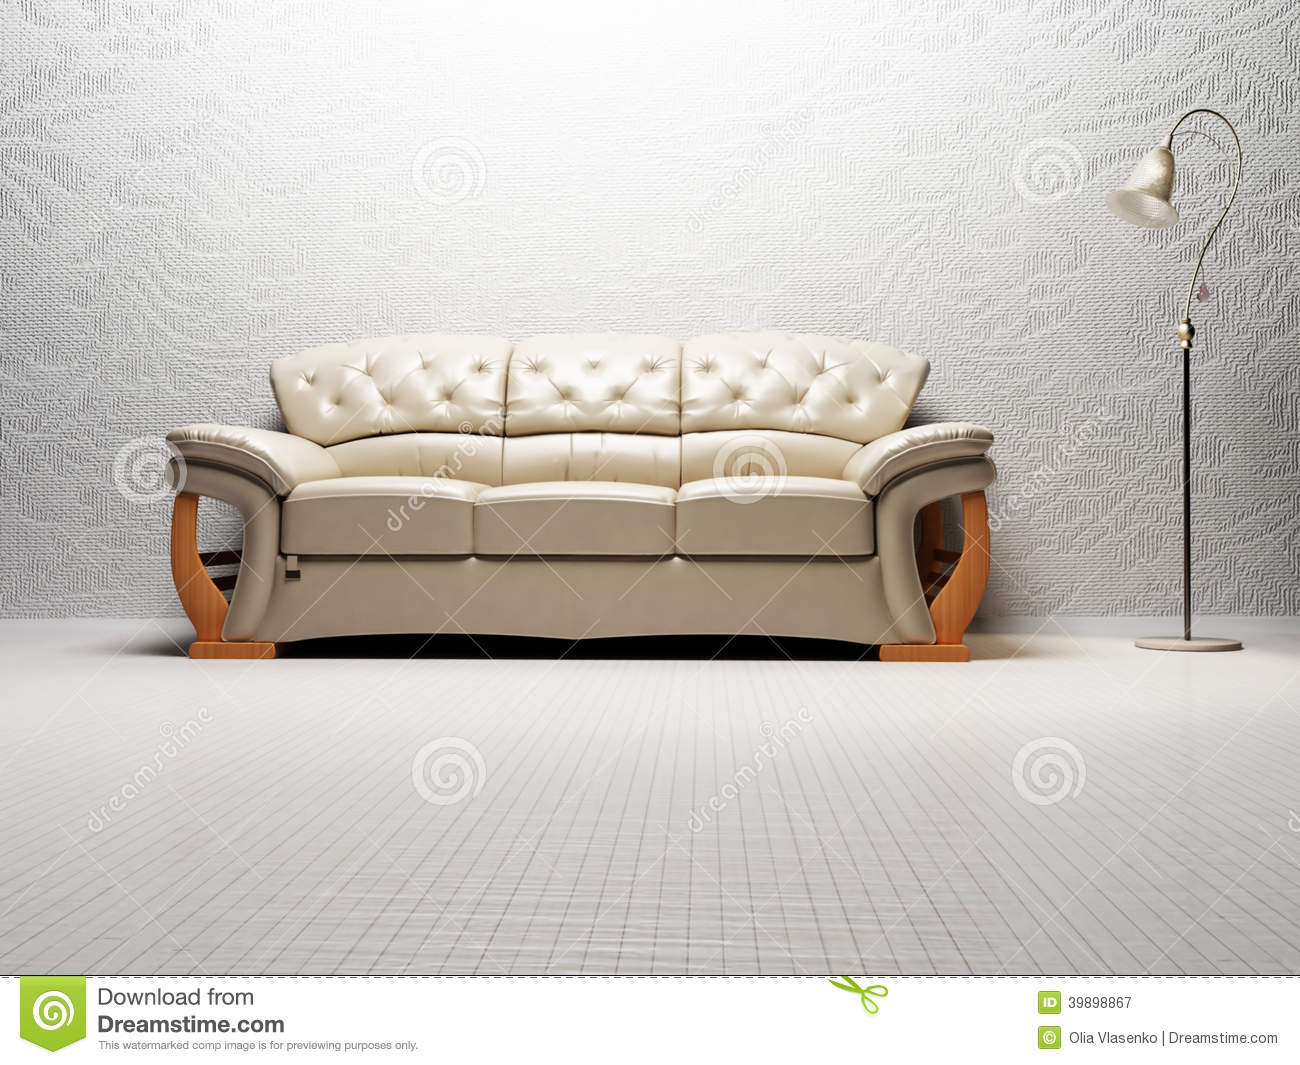 Modern Interior Design Of Living Room With A Bright Sofa Royalty Free Stock Photography